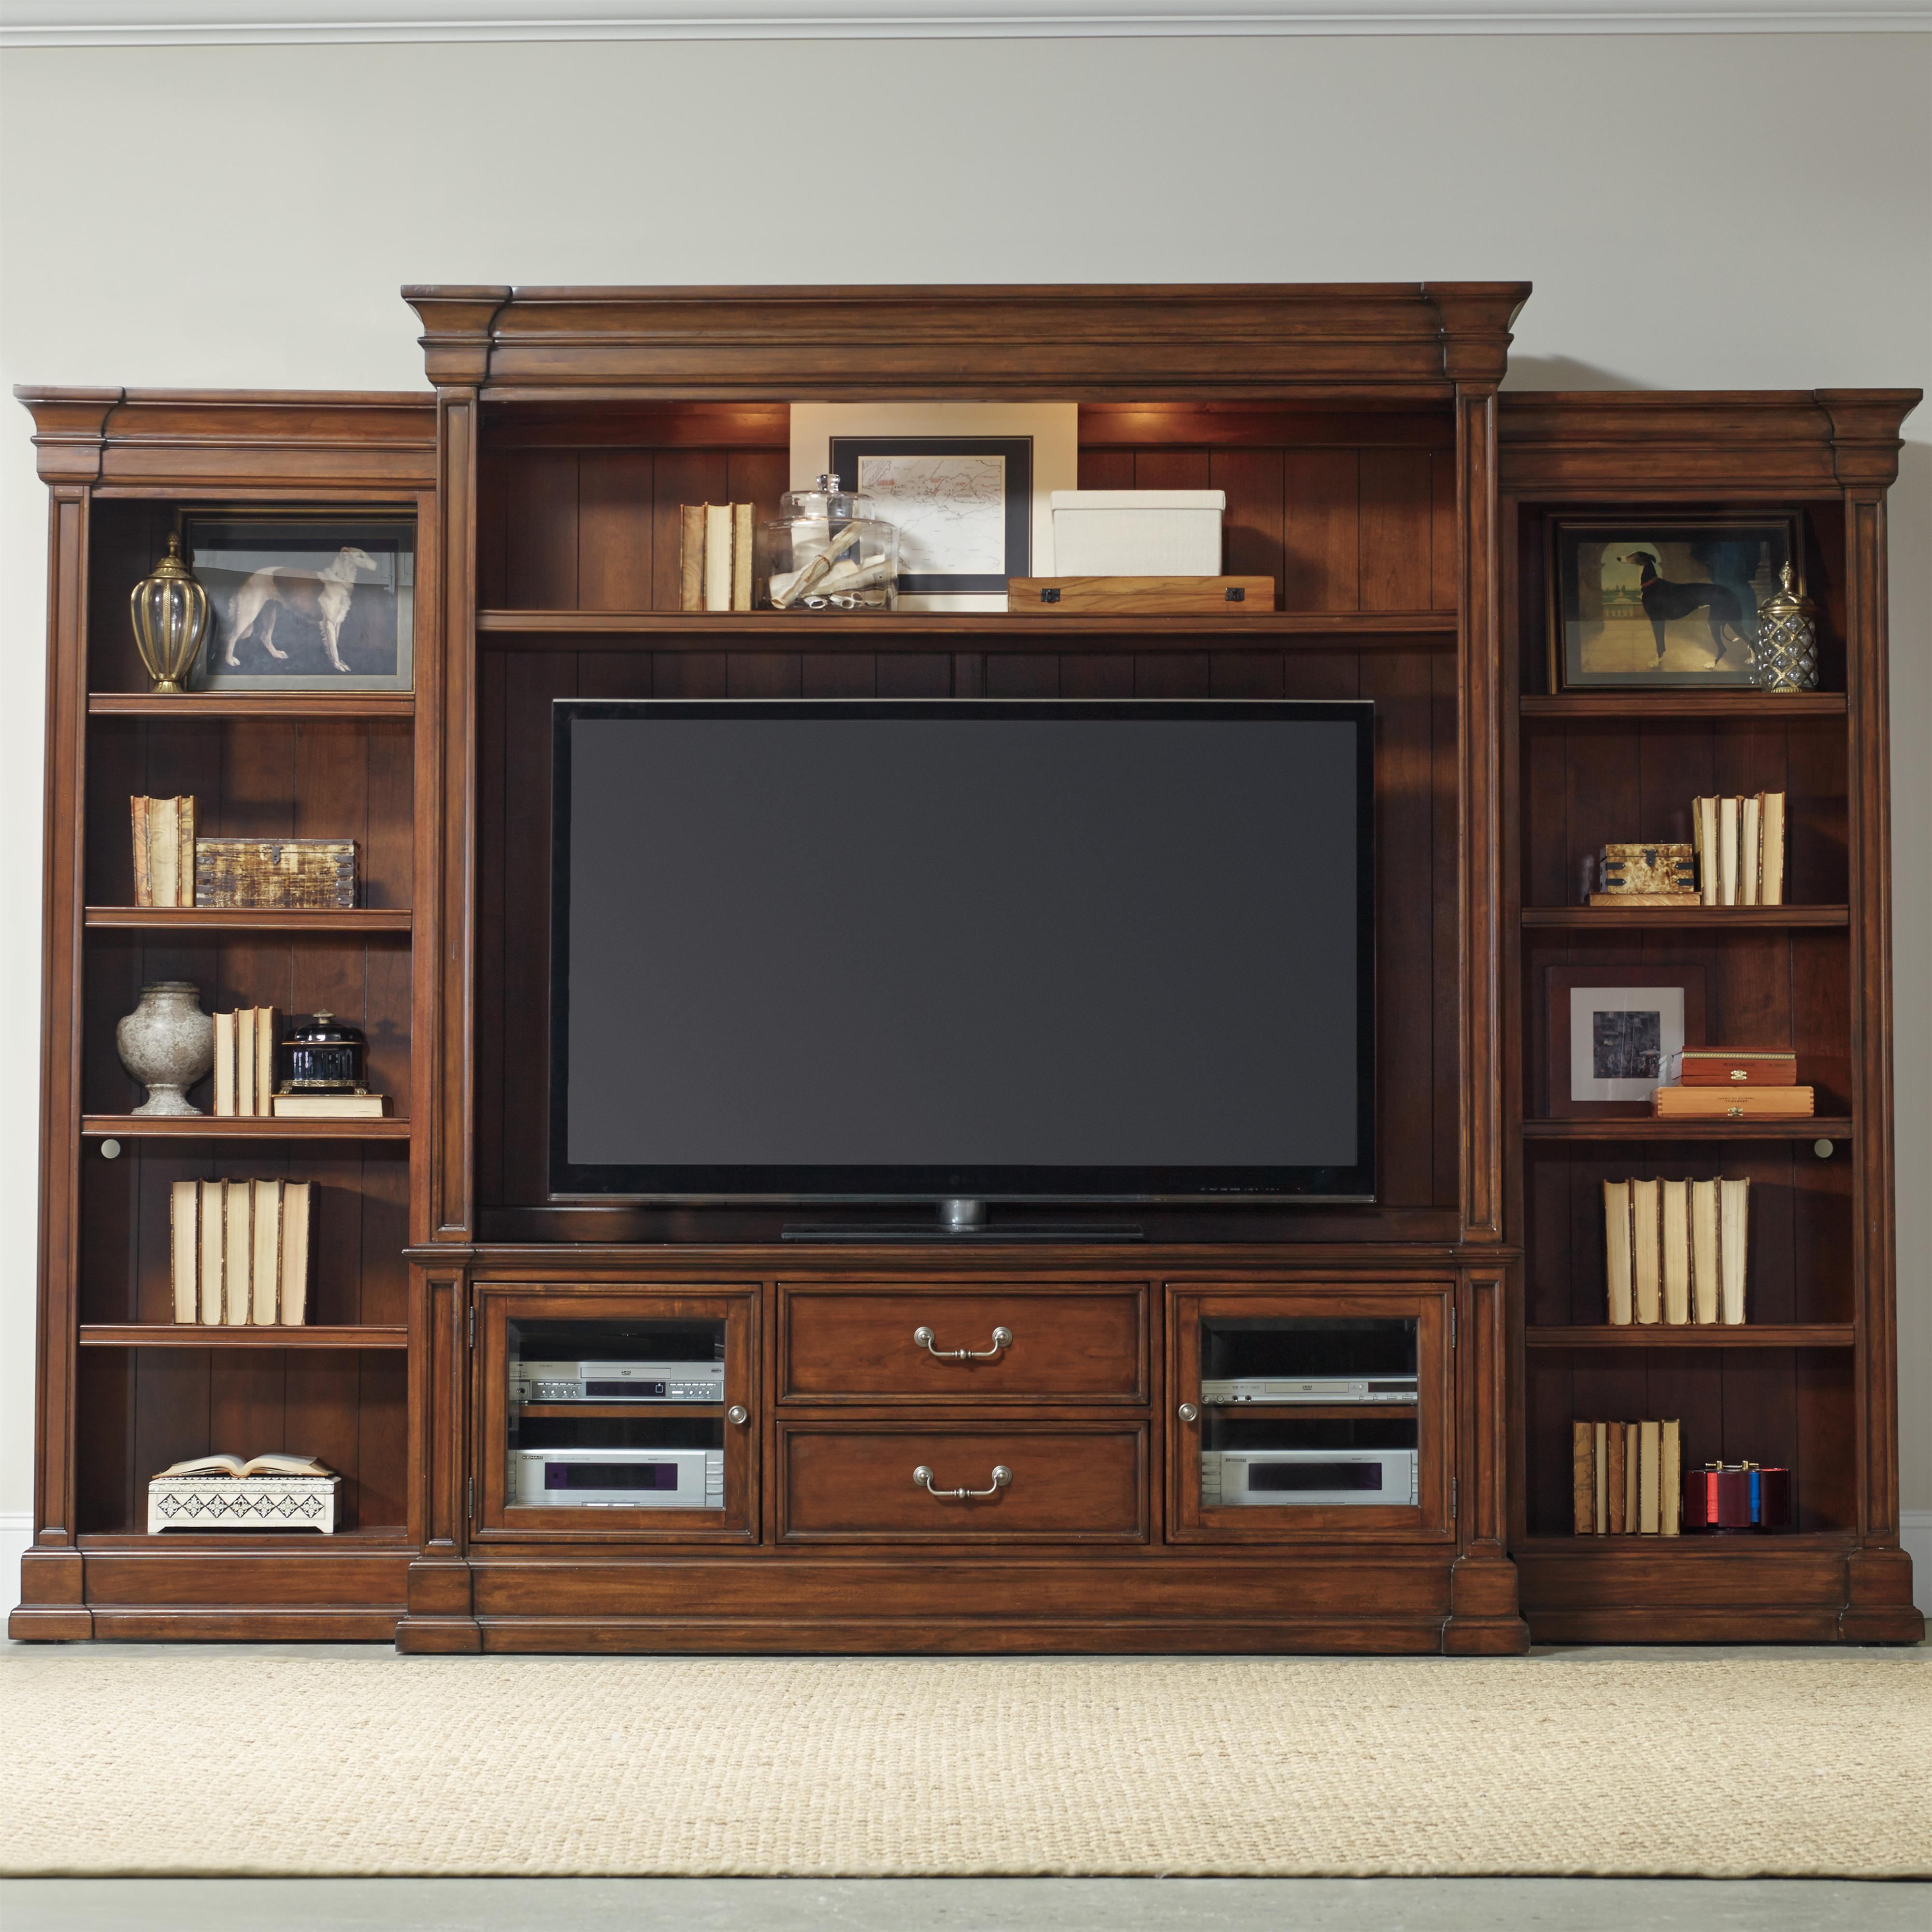 Clermont Four Piece Entertainment Group by Hooker Furniture at Miller Waldrop Furniture and Decor